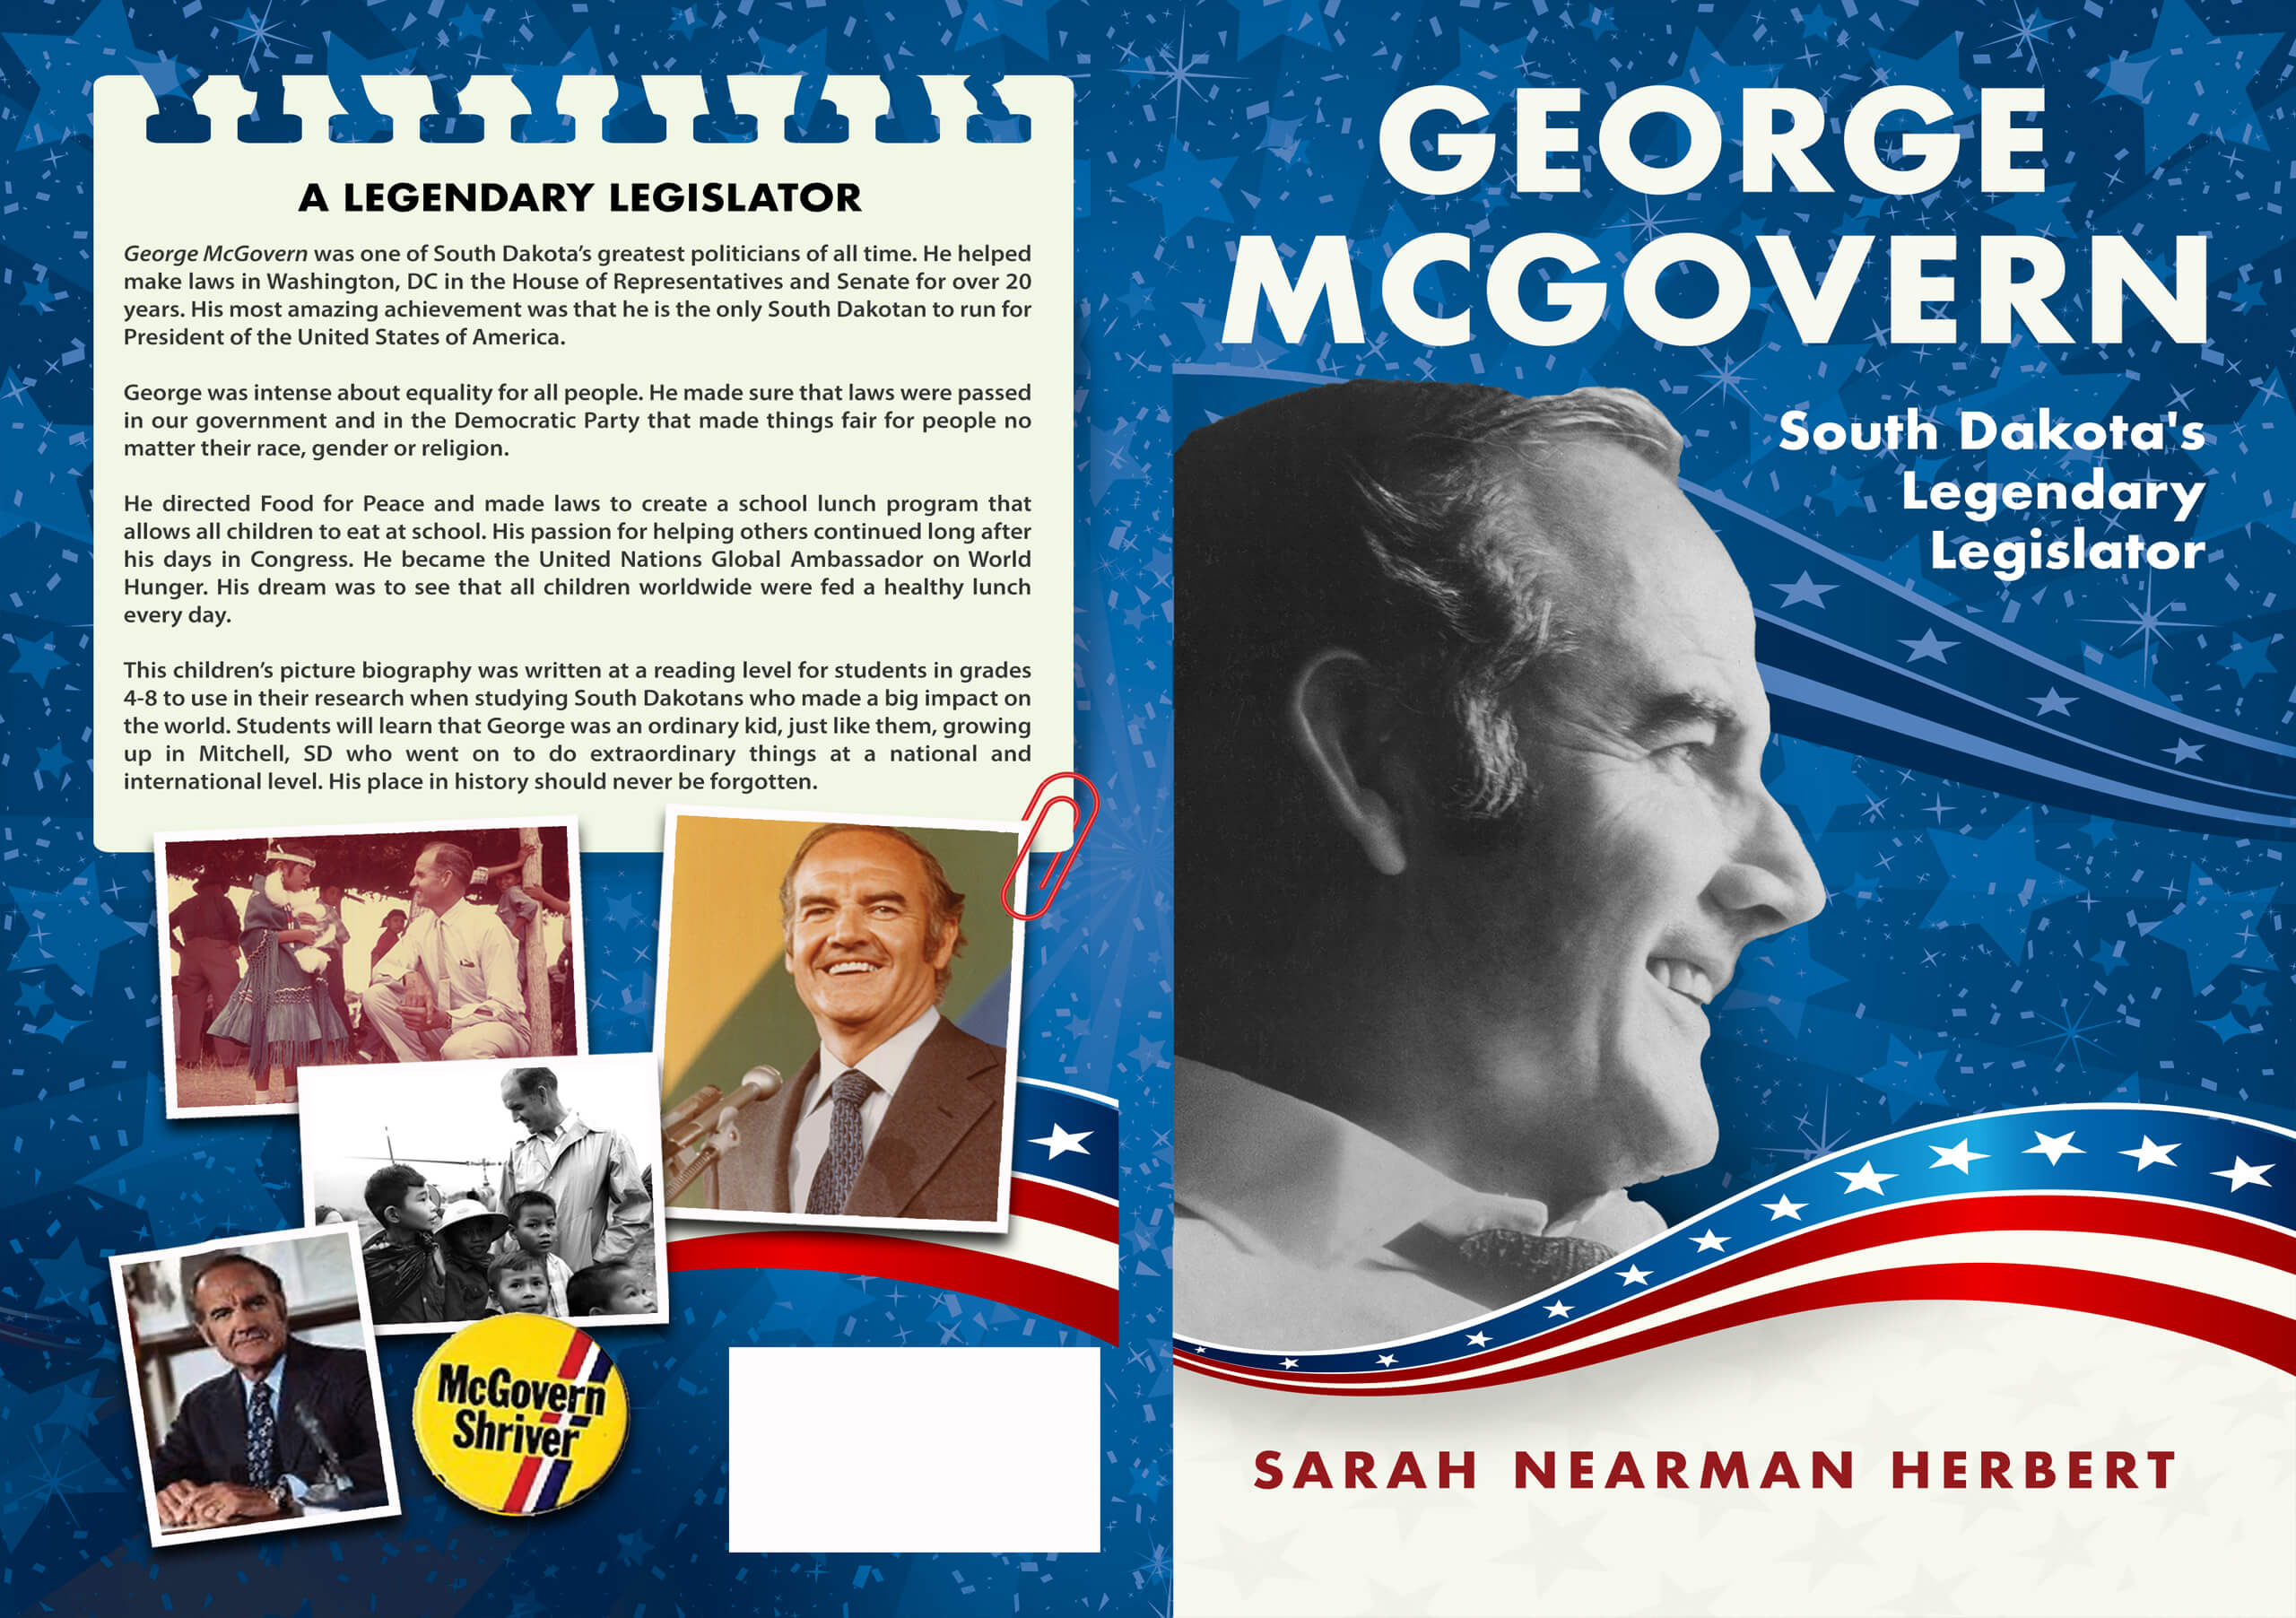 George McGovern resize SMALL